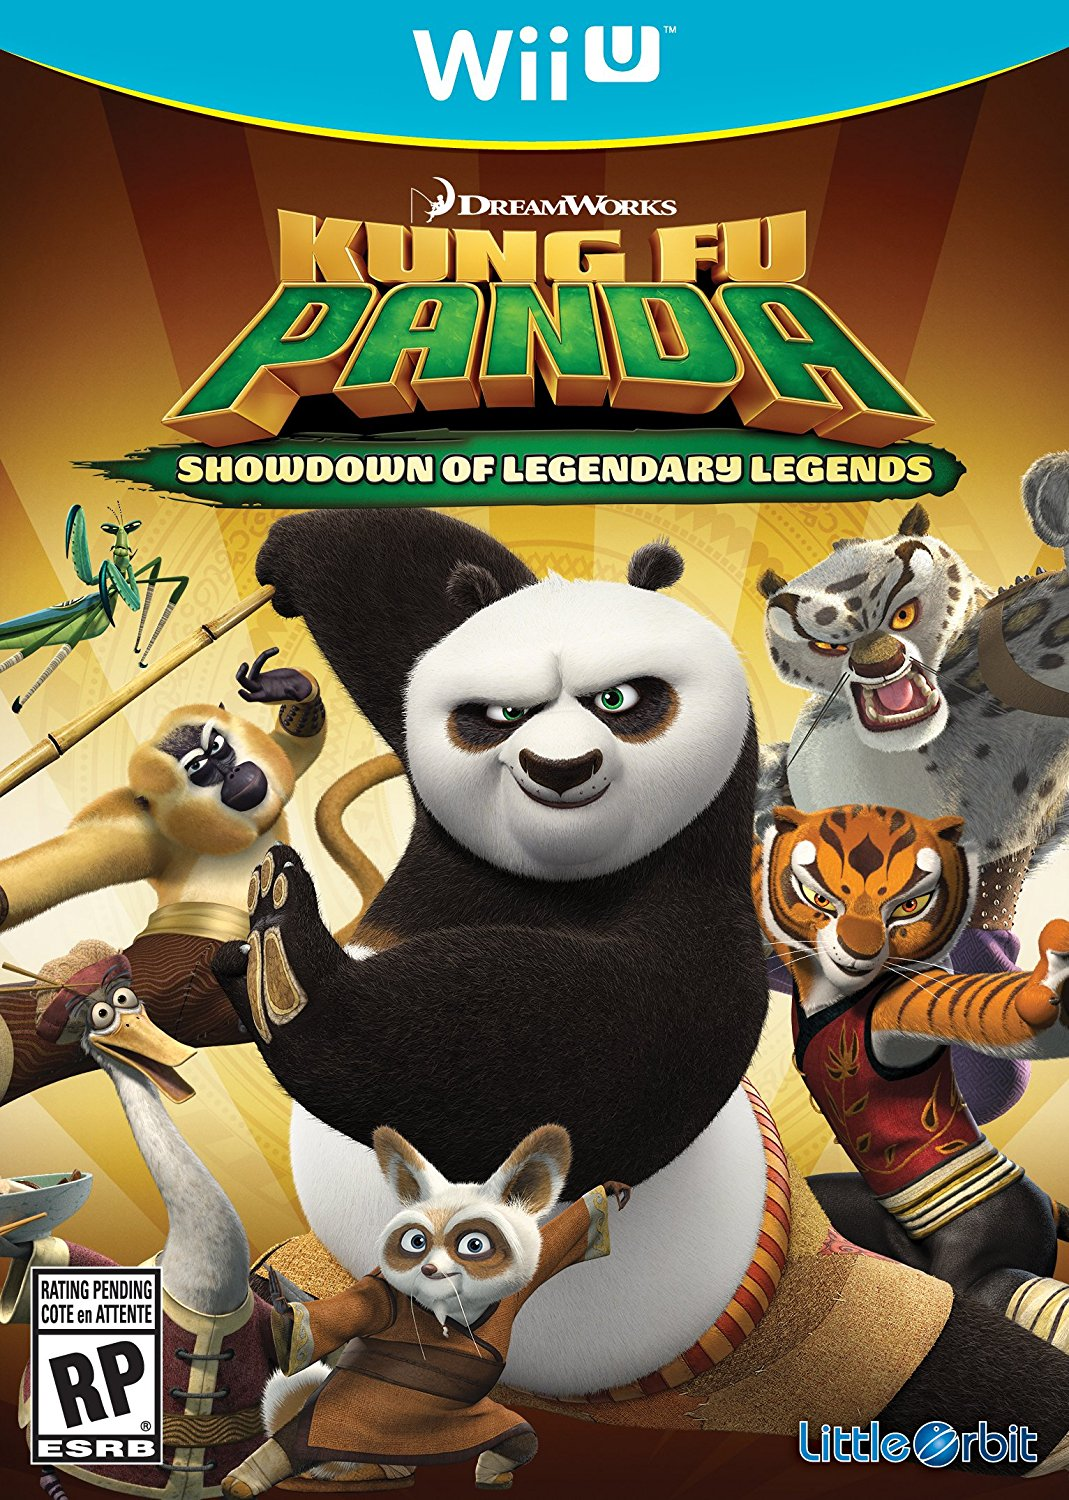 WIIU: KUNG FU PANDA: SHOWDOWN OF LEGENDARY LEGENDS (COMPLETE)